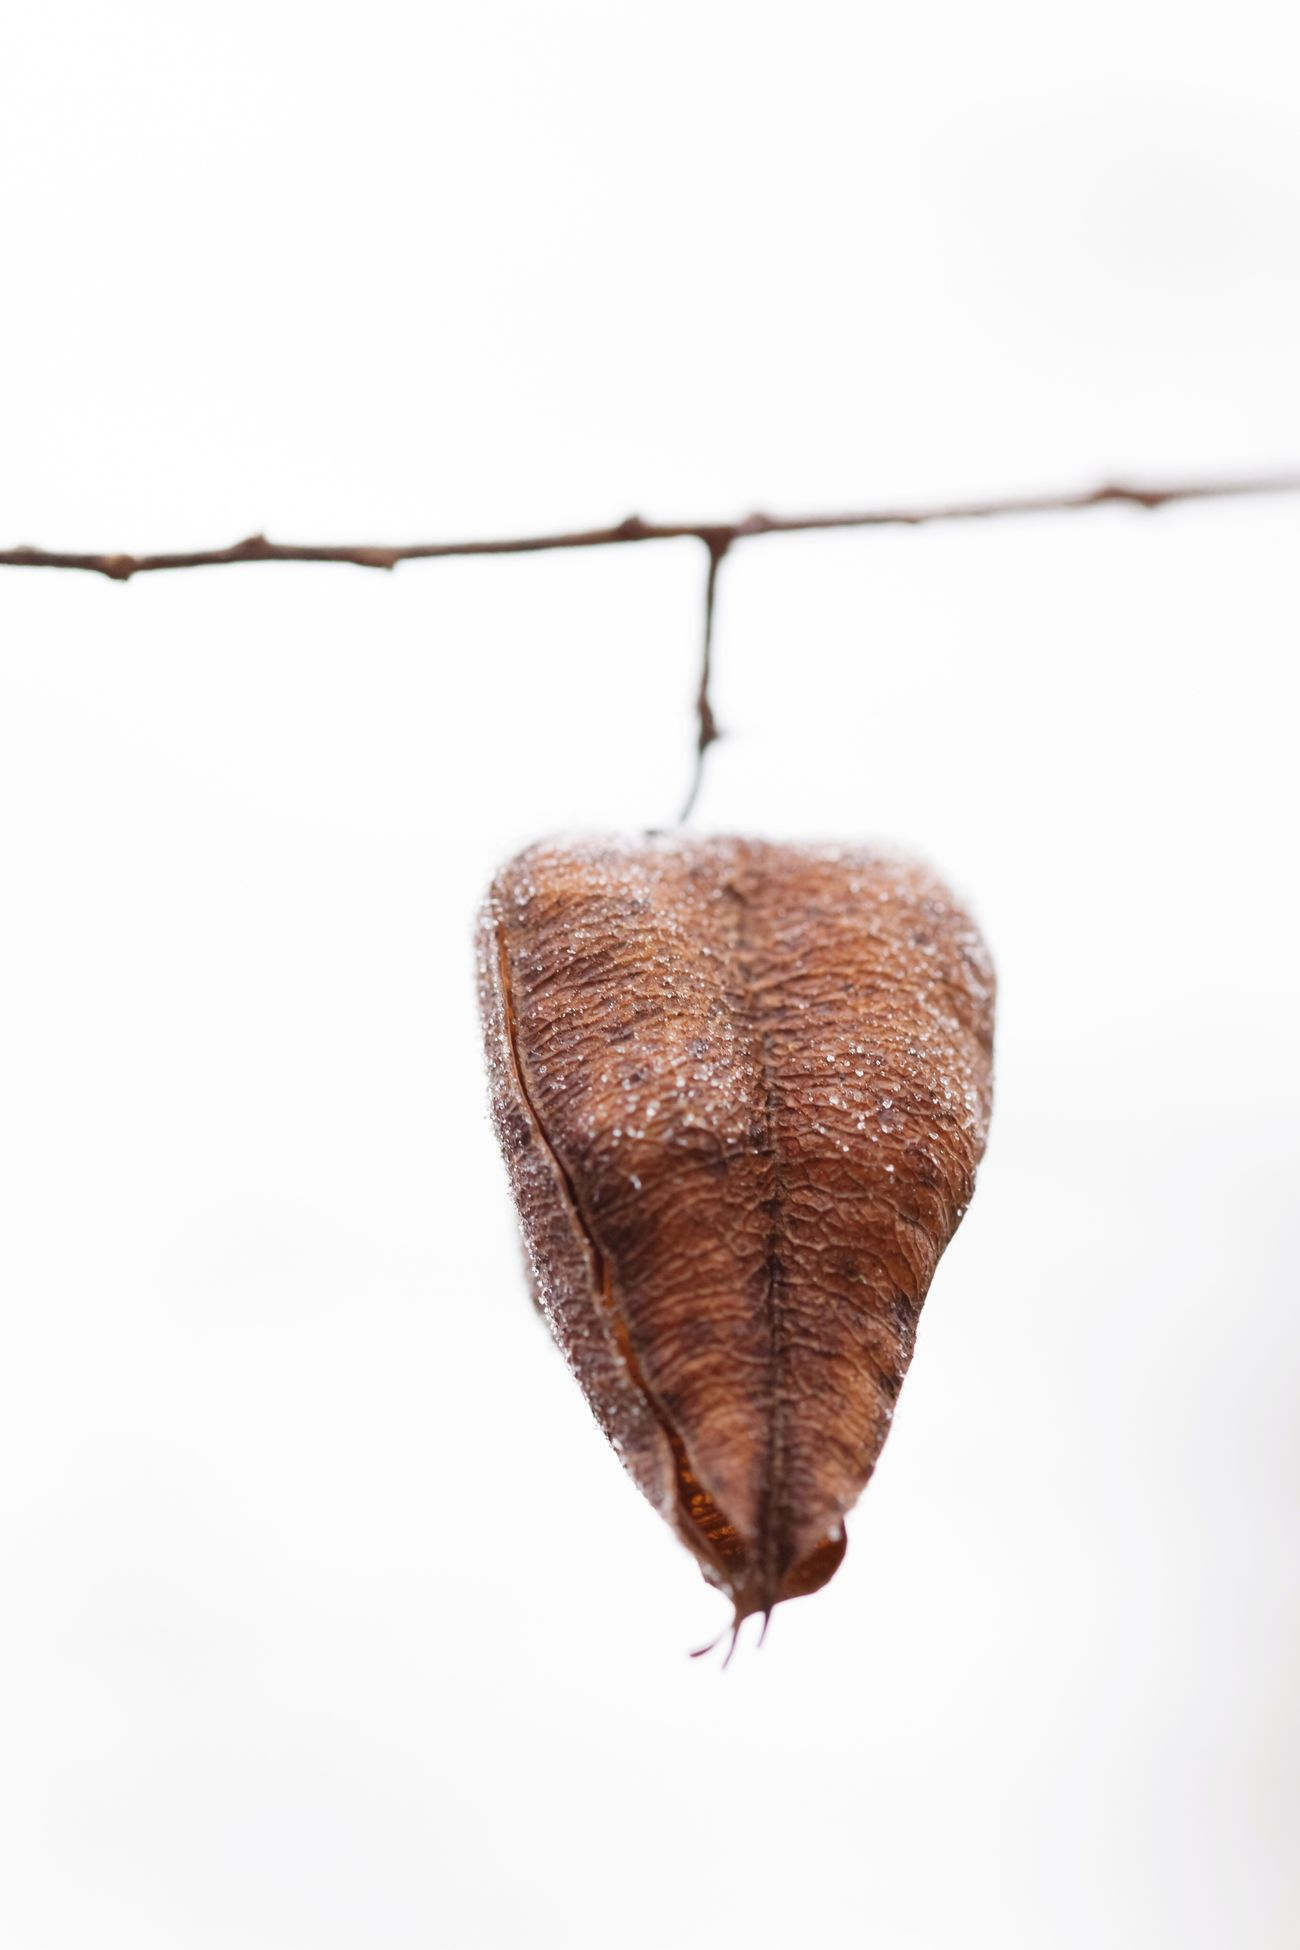 ❤️ Hanging Heart Showcase: February Nature On Your Doorstep EyeEm Nature Lover EyeEm Gallery EyeEm Best Shots - Nature Nature_collection I LOVE PHOTOGRAPHY Malephotographerofthemonth Only Nature Close-up Dof Simple Quiet Love Fineart Eye4photography  Macro Germany Nature's Diversities Purity Full Frame Tree_collection  TreePorn Plants And Flowers Winter